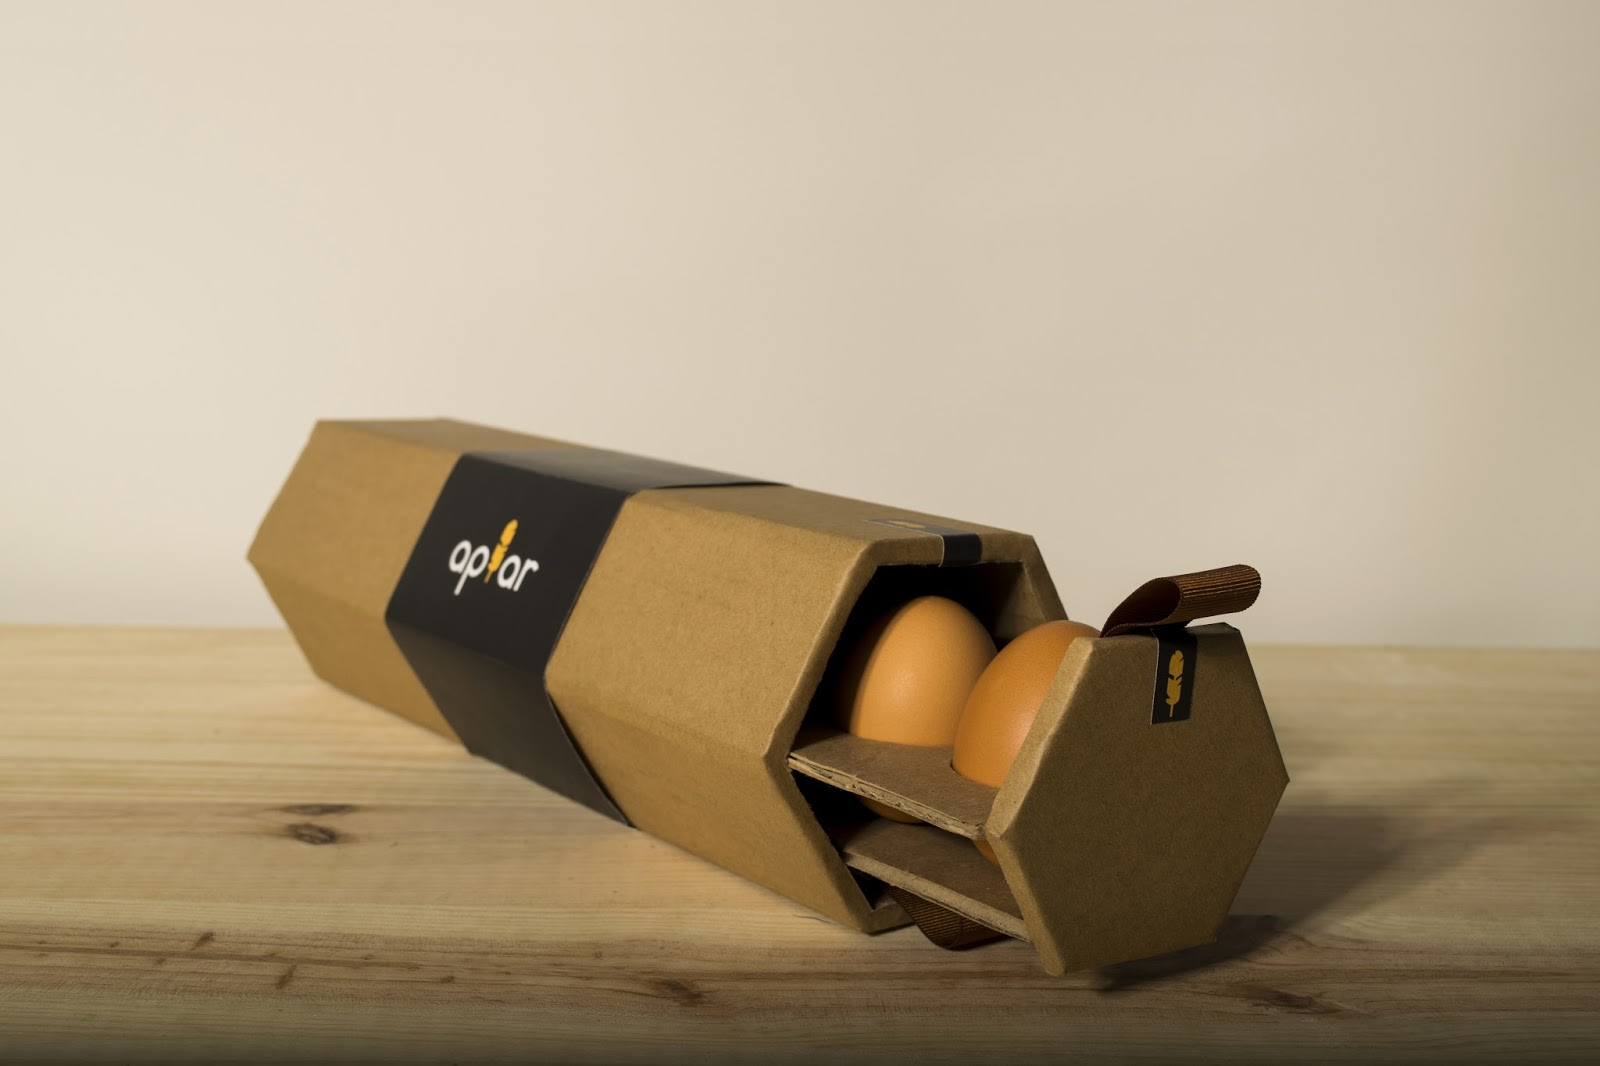 Apiar Eggs Student Project on Packaging of the World